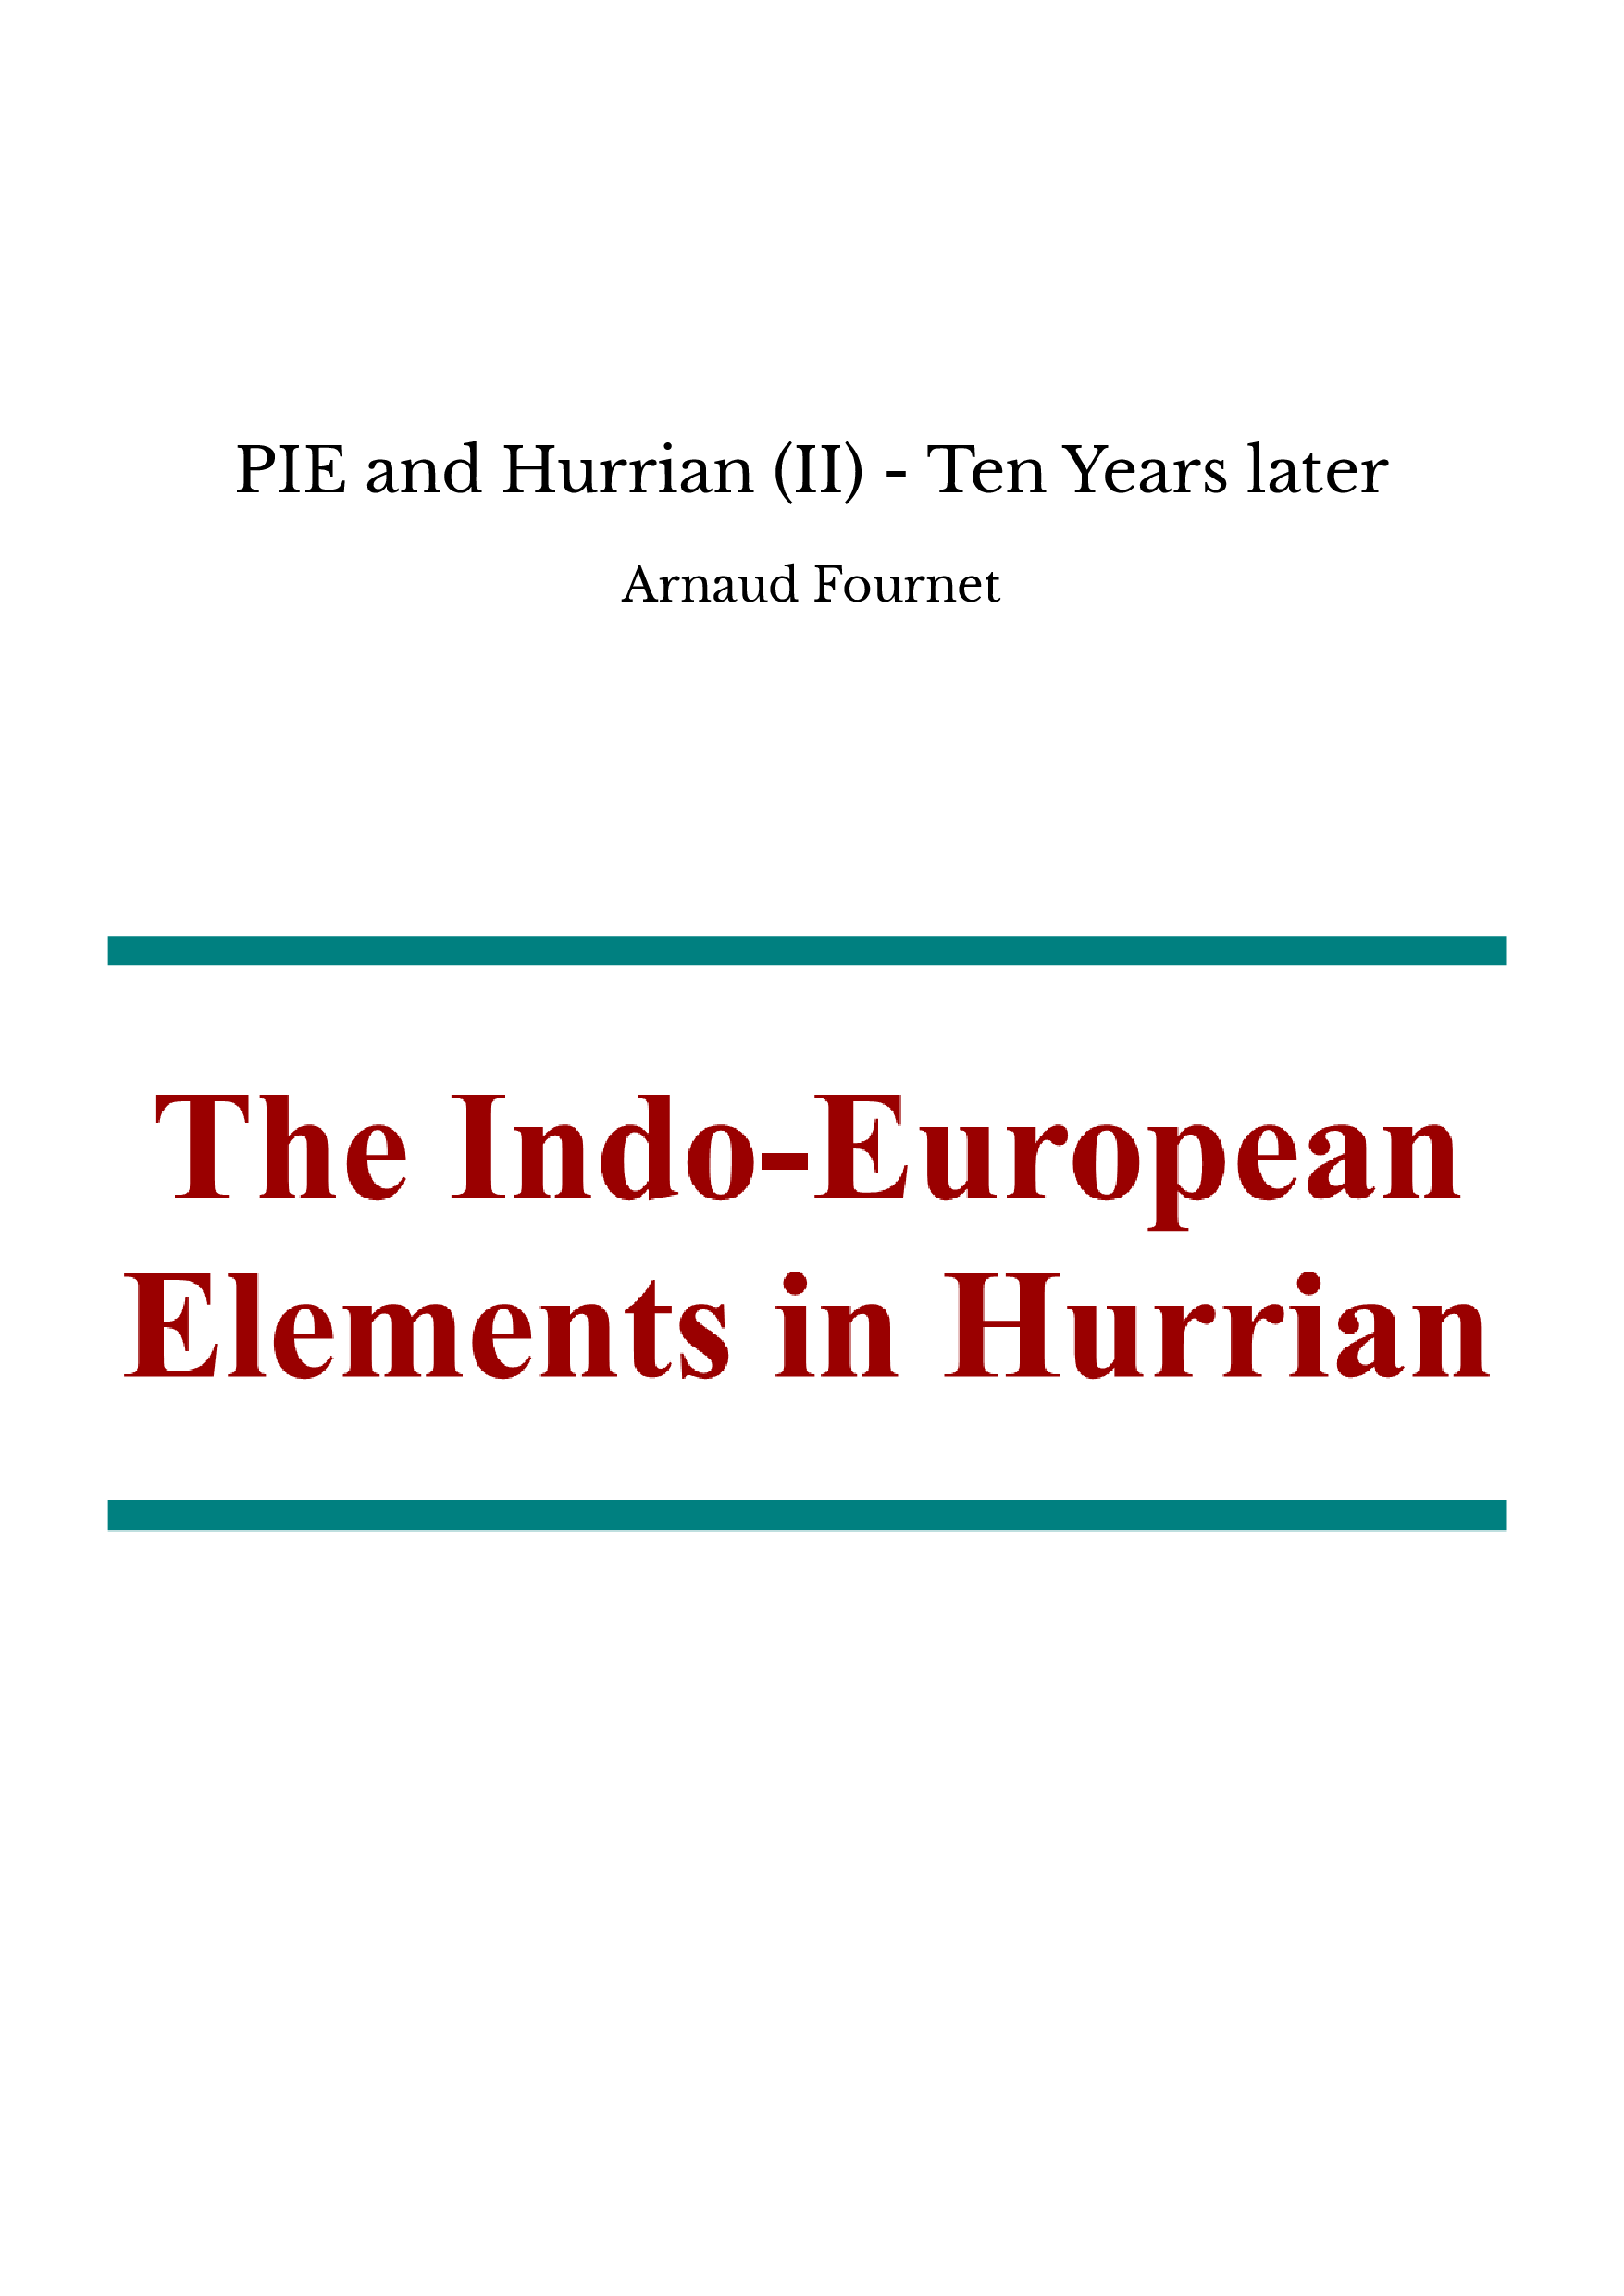 PIE and Hurrian (II) - Ten Years later